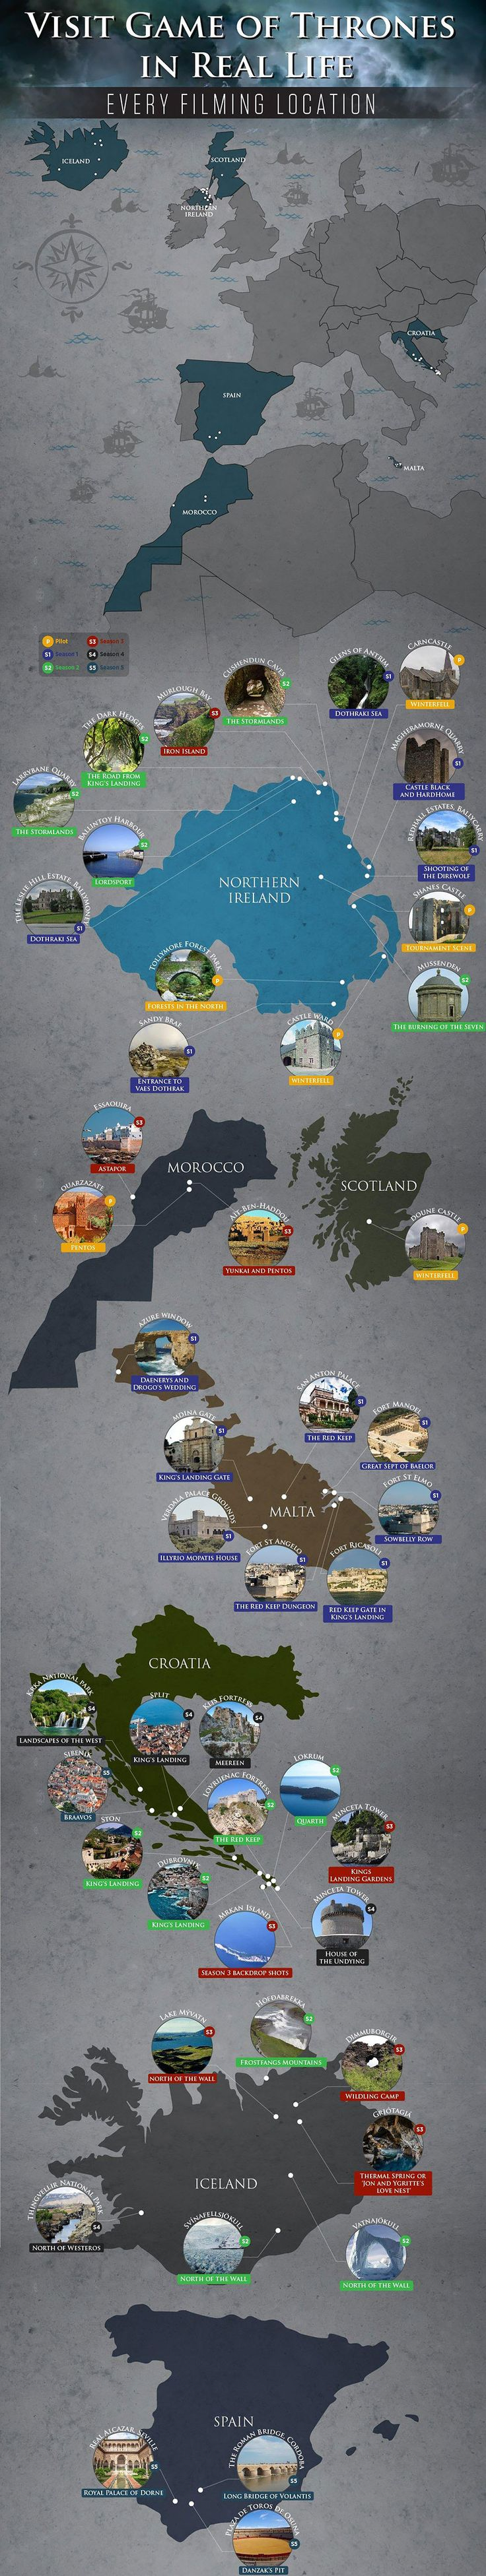 Game of Thrones. Locations. Juego de Tronos. Localizaciones